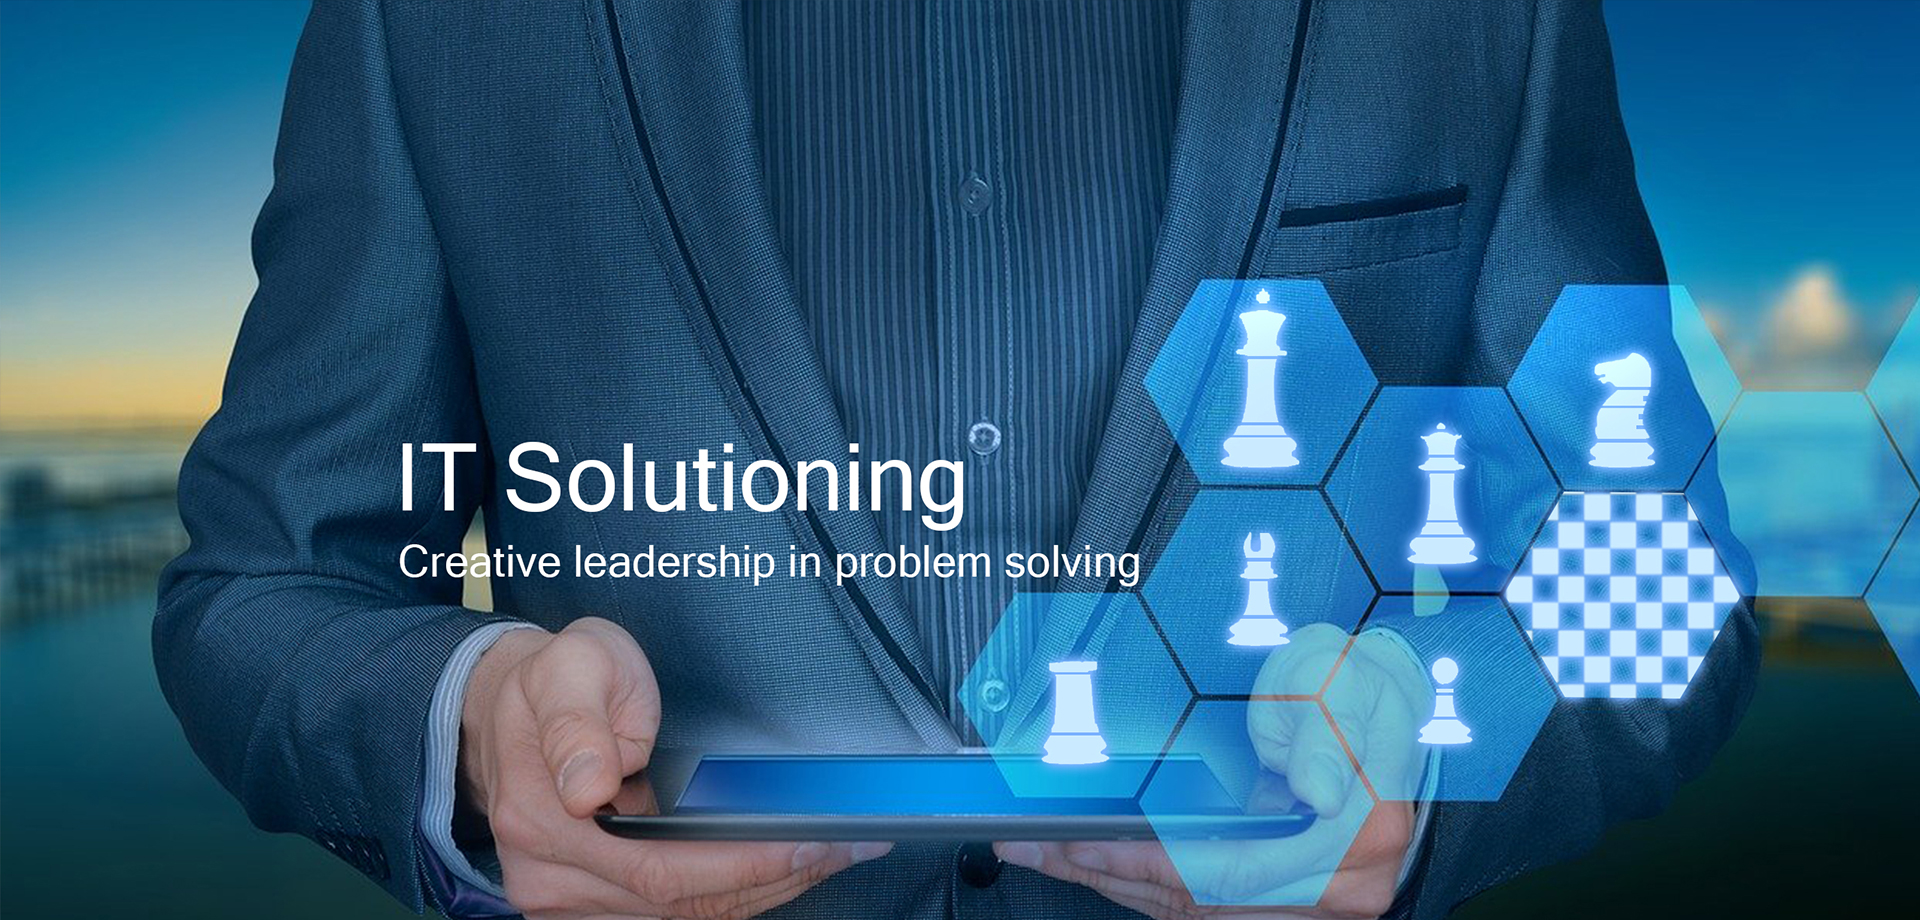 We Provide End-to-End IT Solution